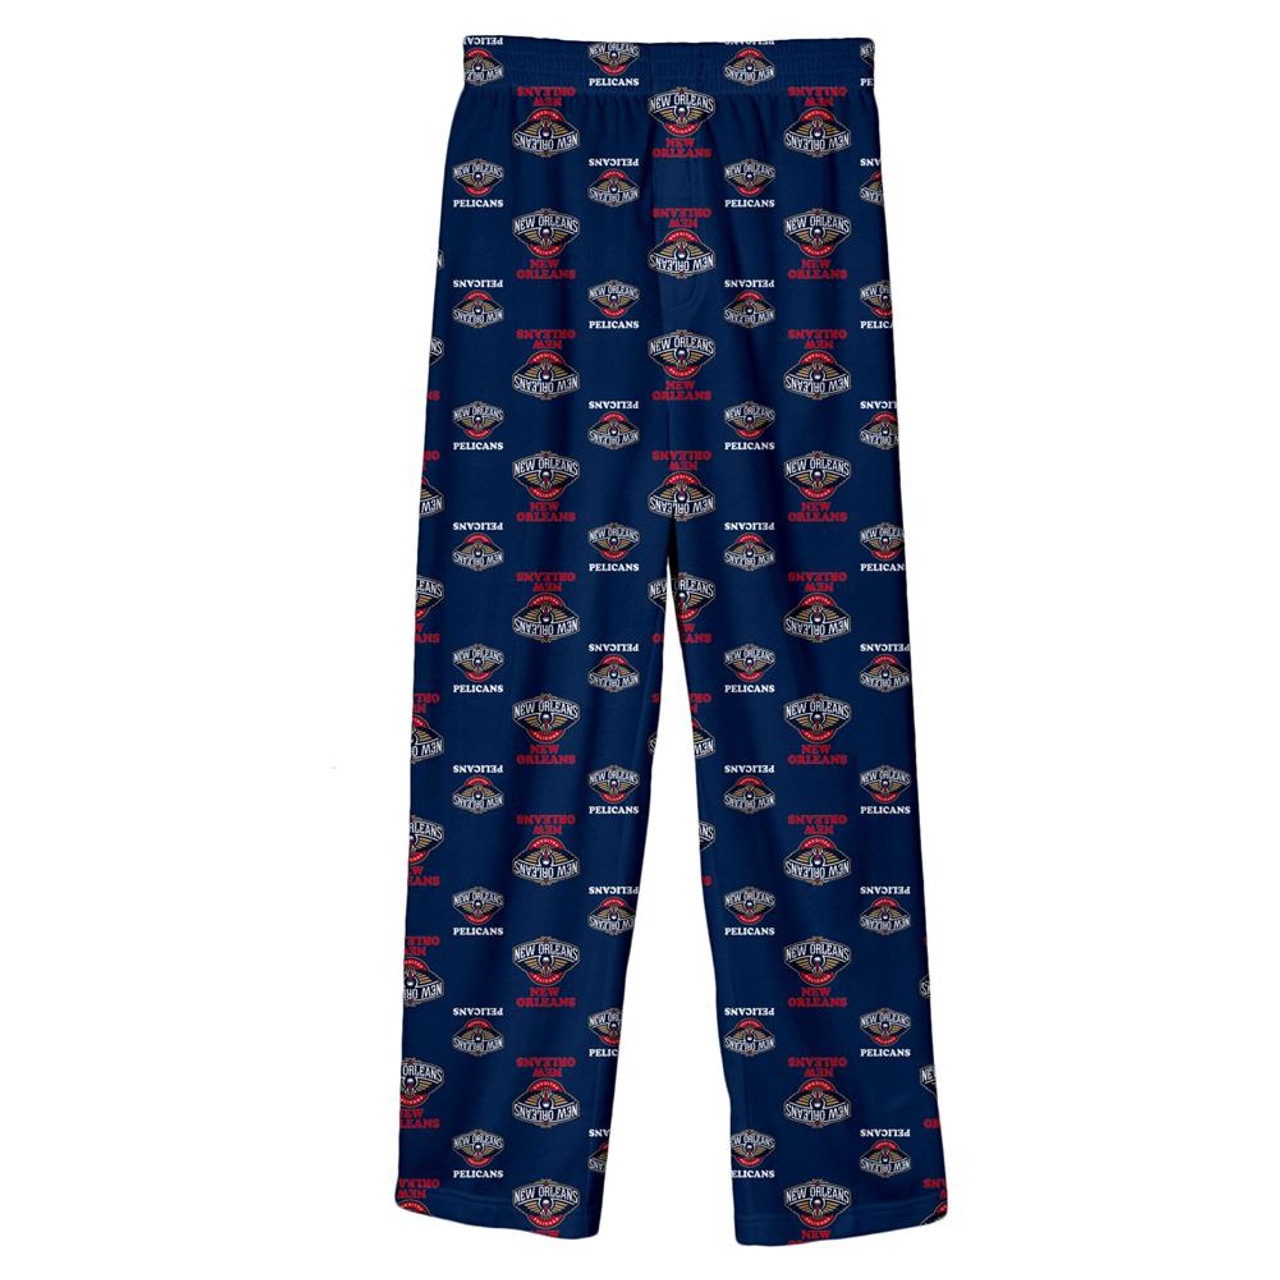 Youth New Orleans Pelicans Pajama Pant Boys Sleep Bottoms